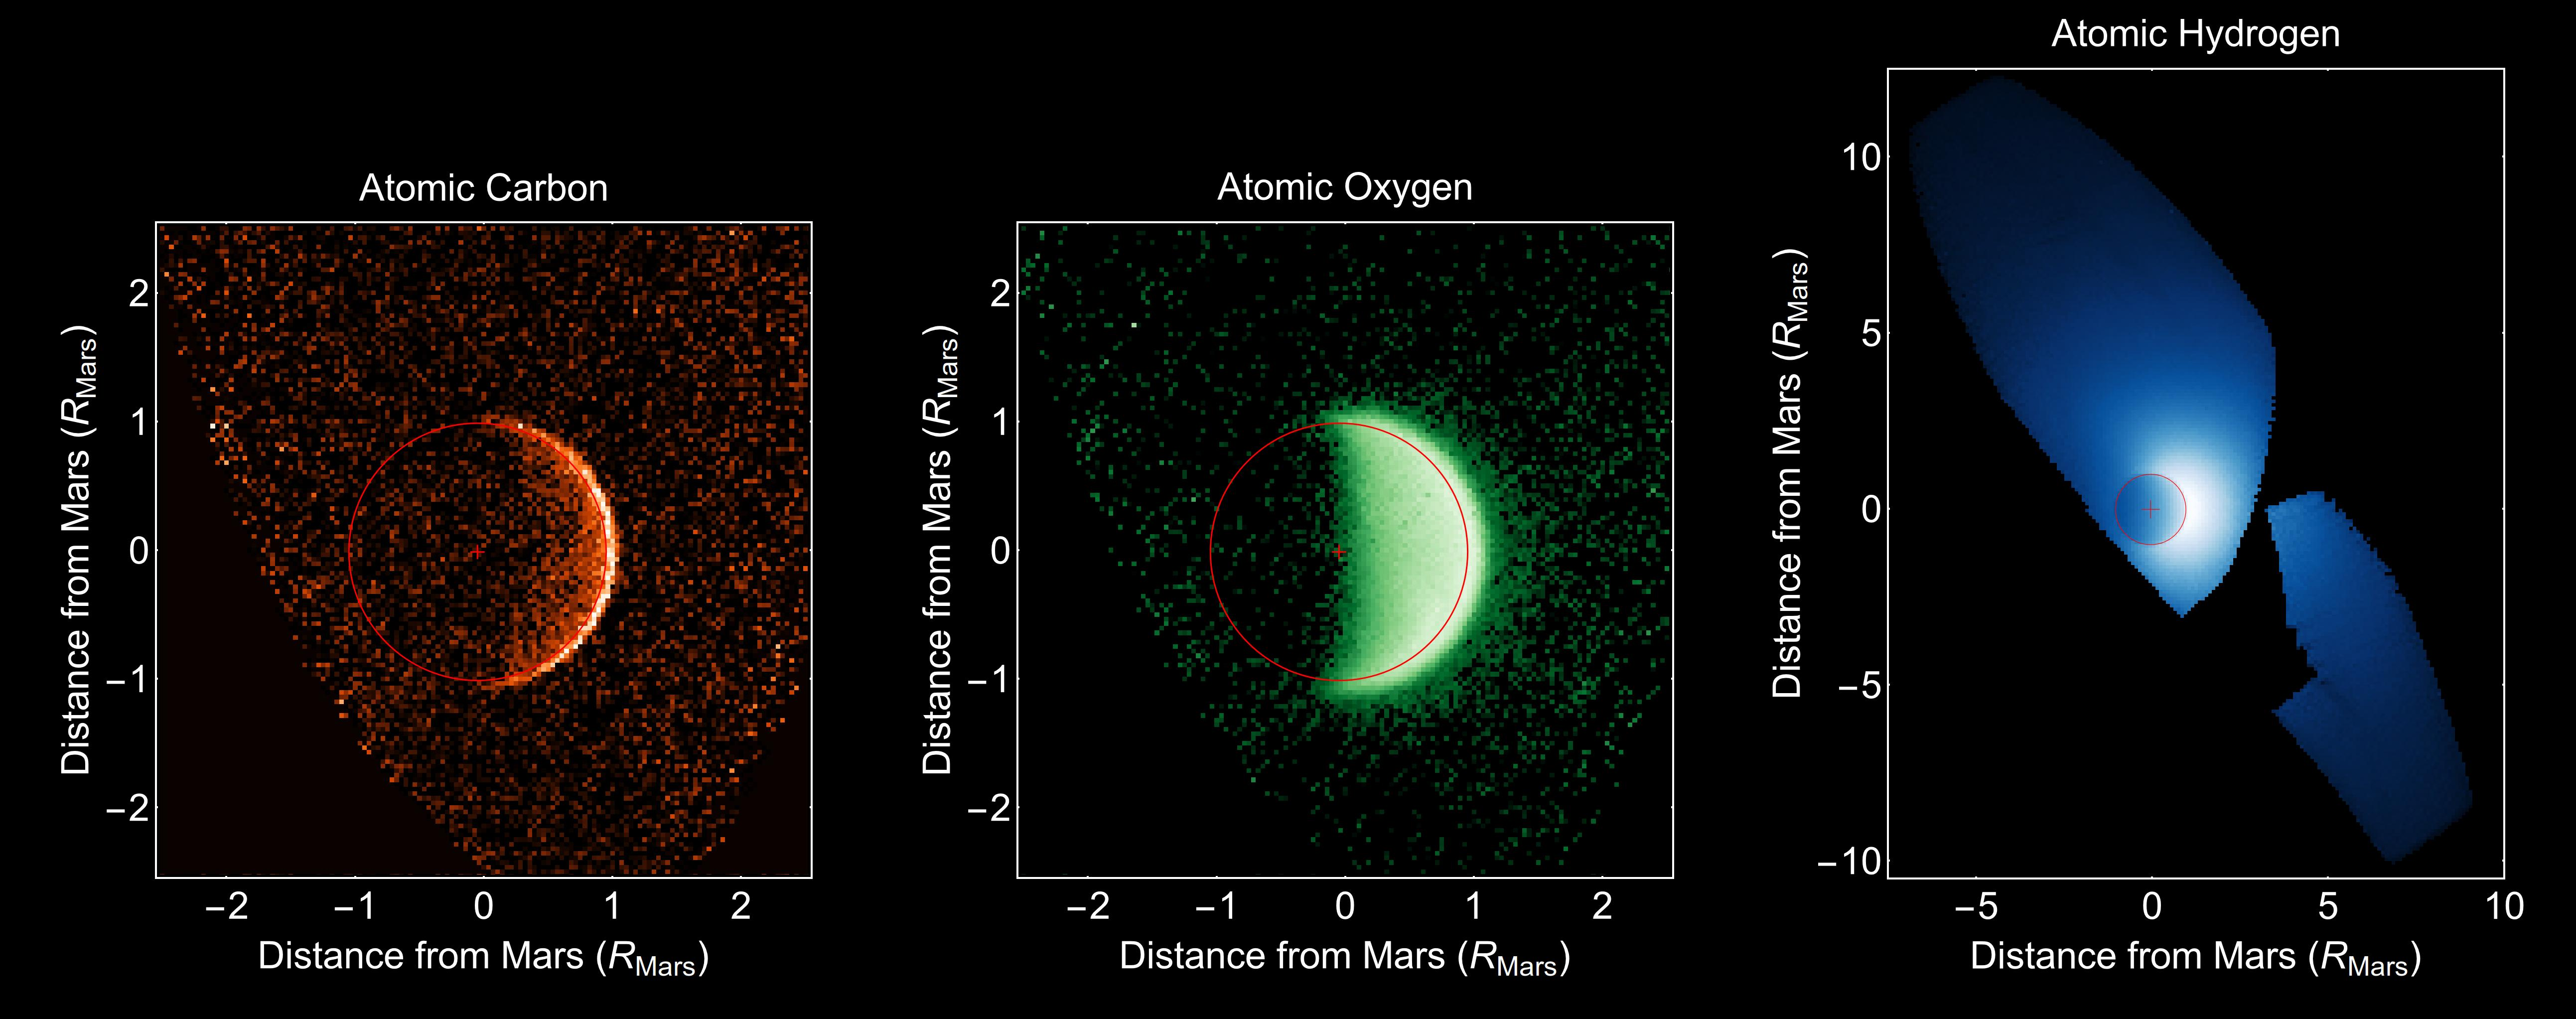 file pia marsmaven atmosphere uv views jpg  file pia18613 marsmaven atmosphere 3uv views 20141014 jpg